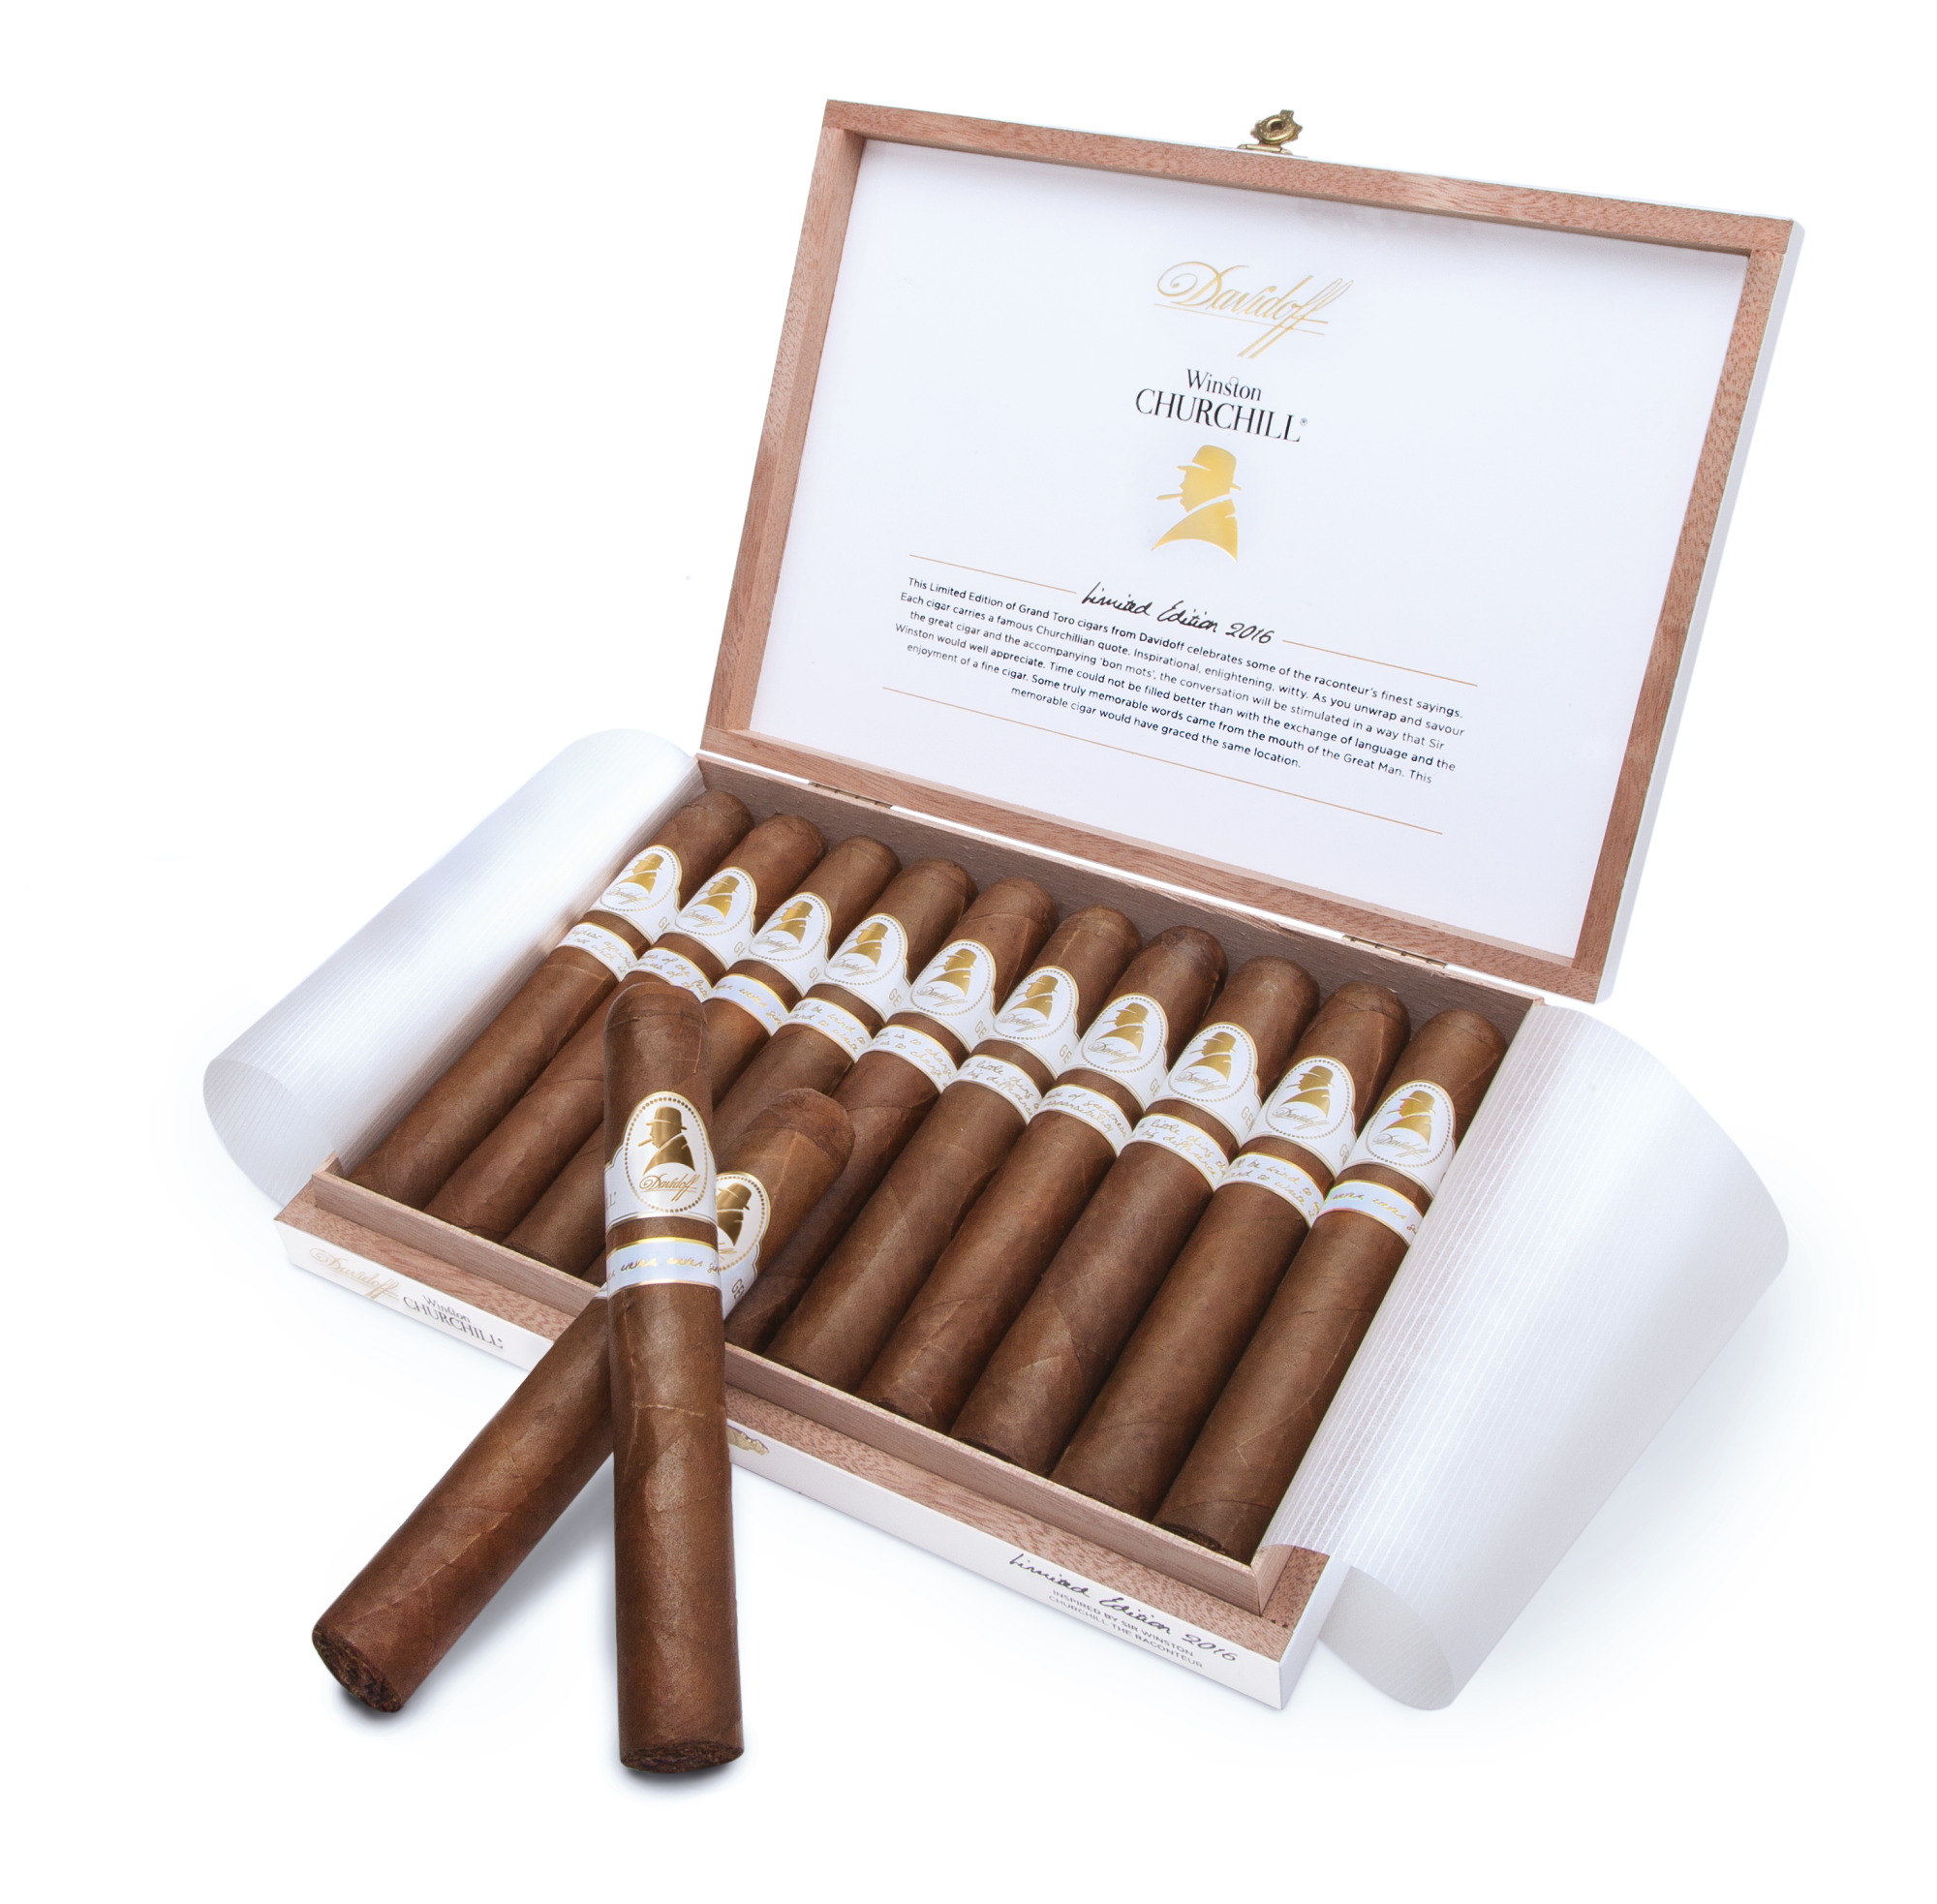 """Cigar News: Davidoff Winston Churchill Limited Edition 2016 """"The Raconteur"""" Launching in January"""